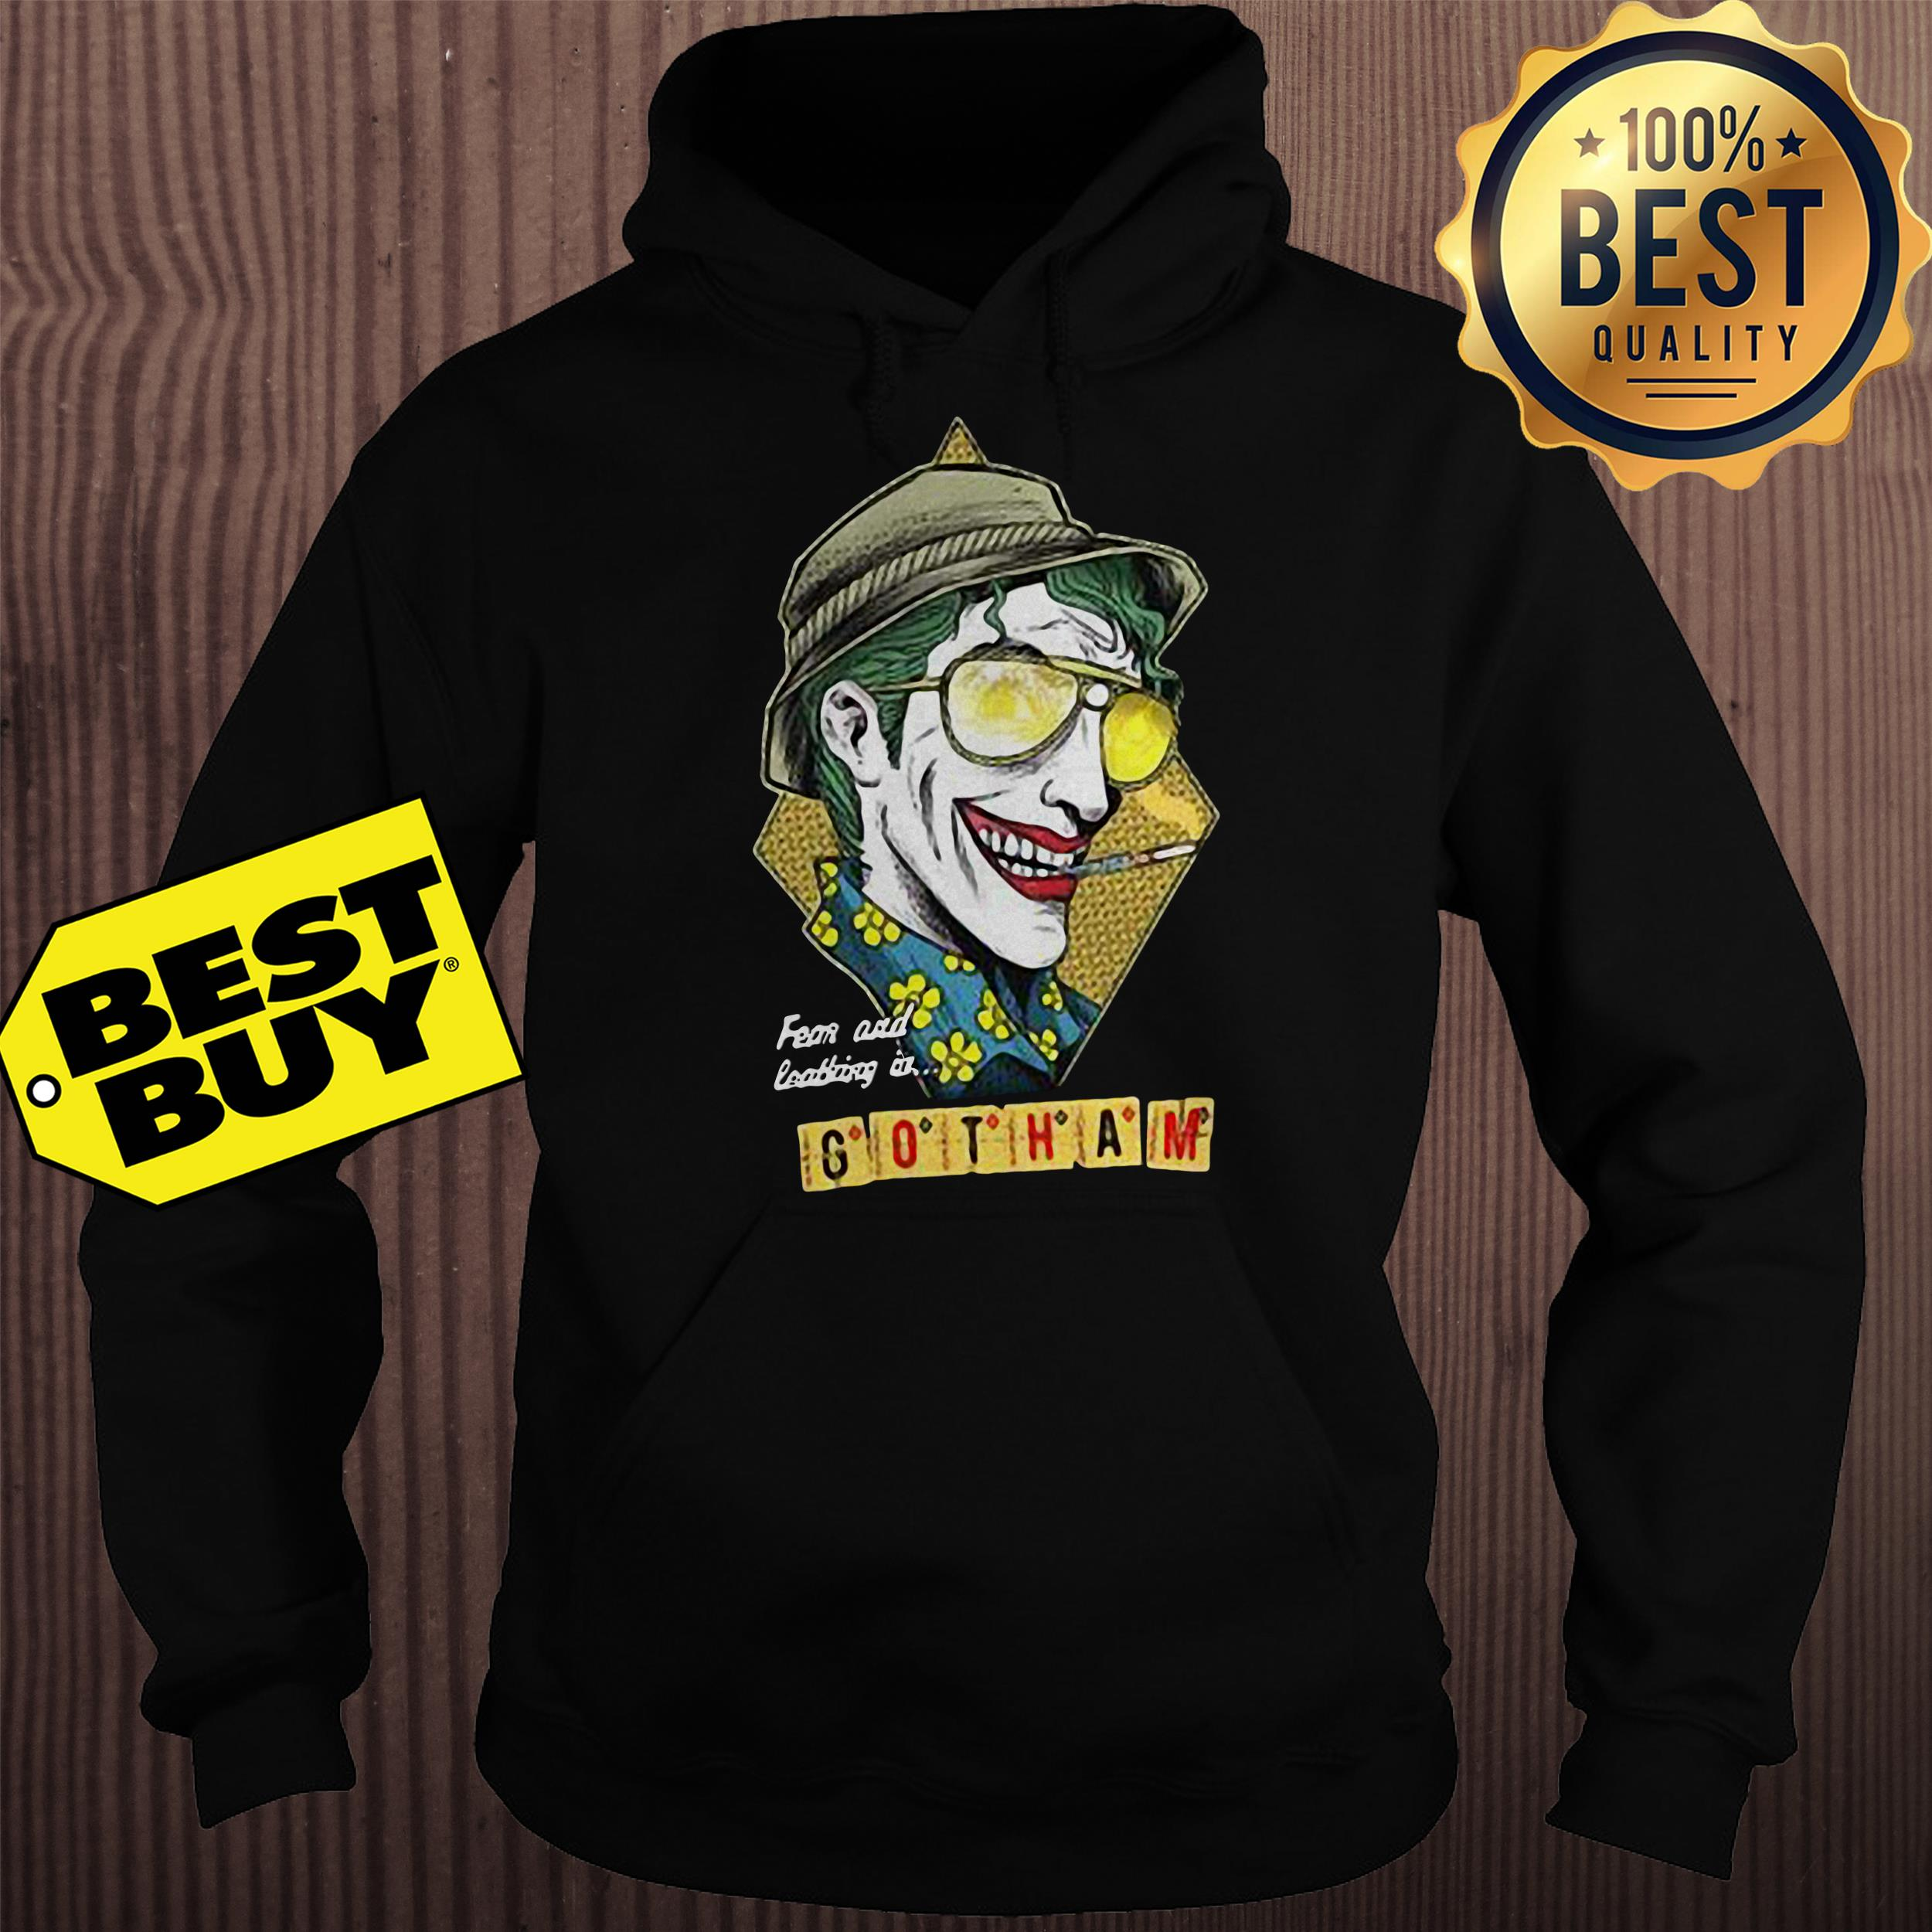 Fear and loathing at Gotham hoodie